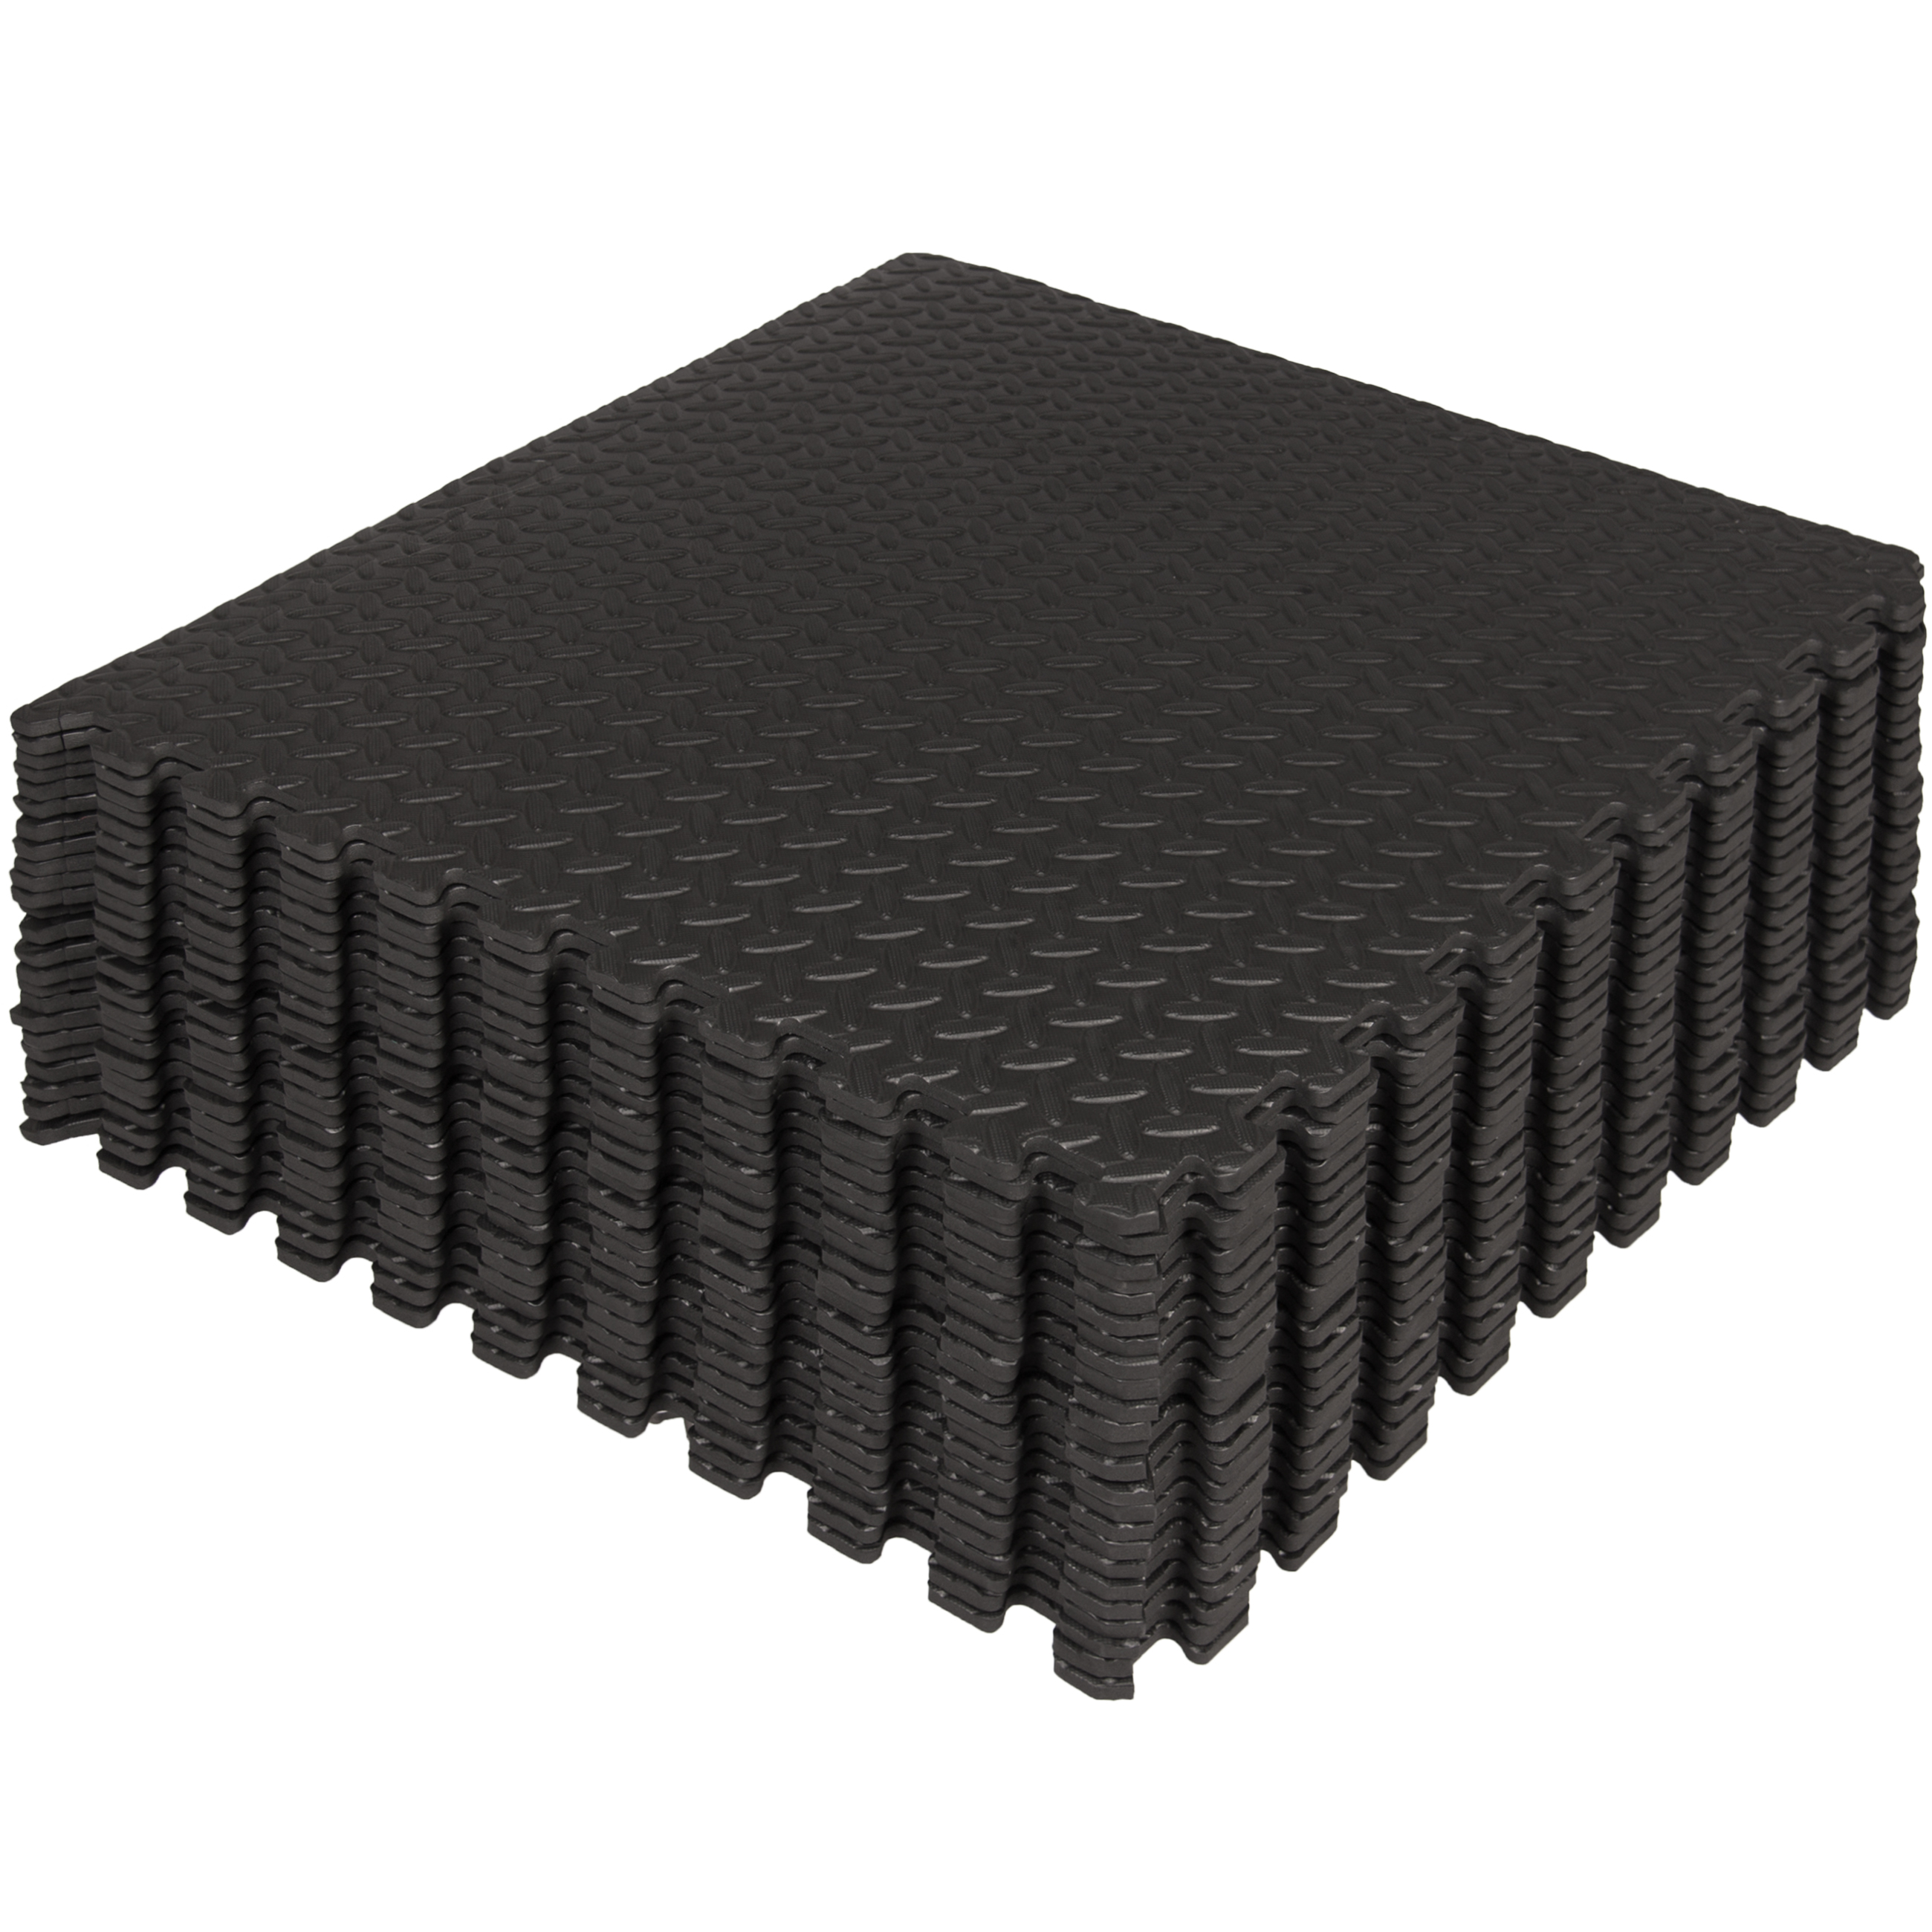 interlocking black ft pacific inch tile workout rubber mats usr floor full in gym